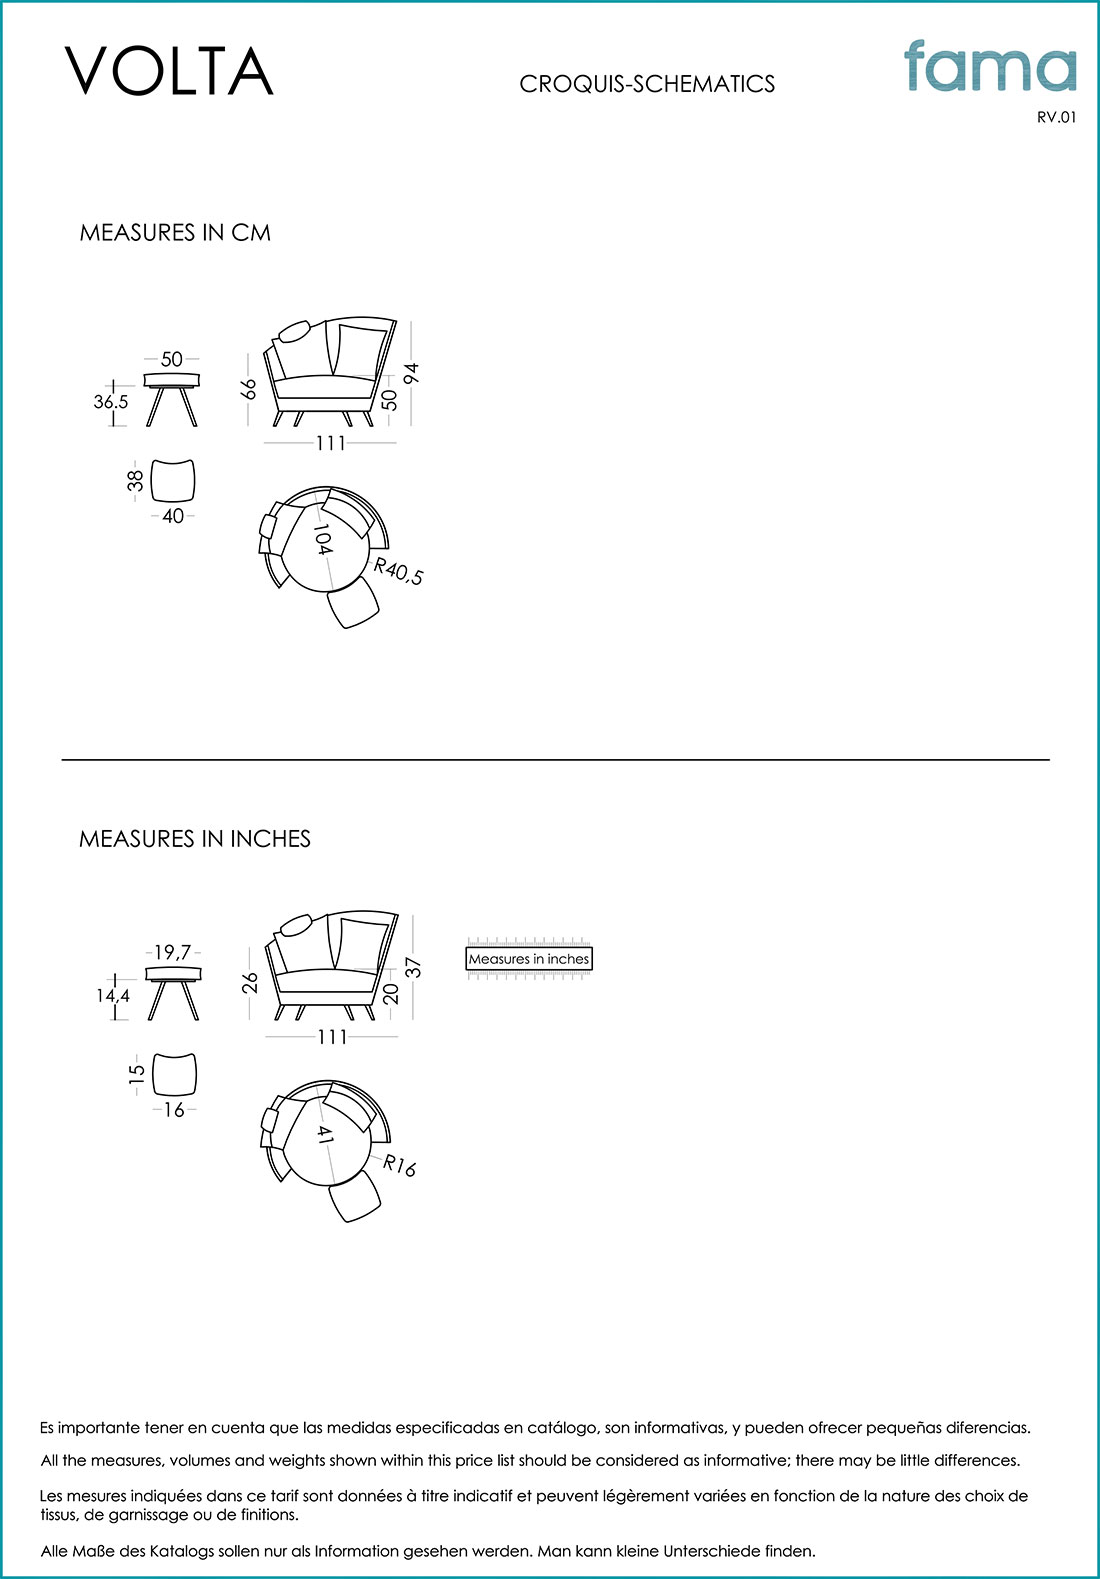 contemporary_armchair_famaliving_montreal_volta_specification_sheet